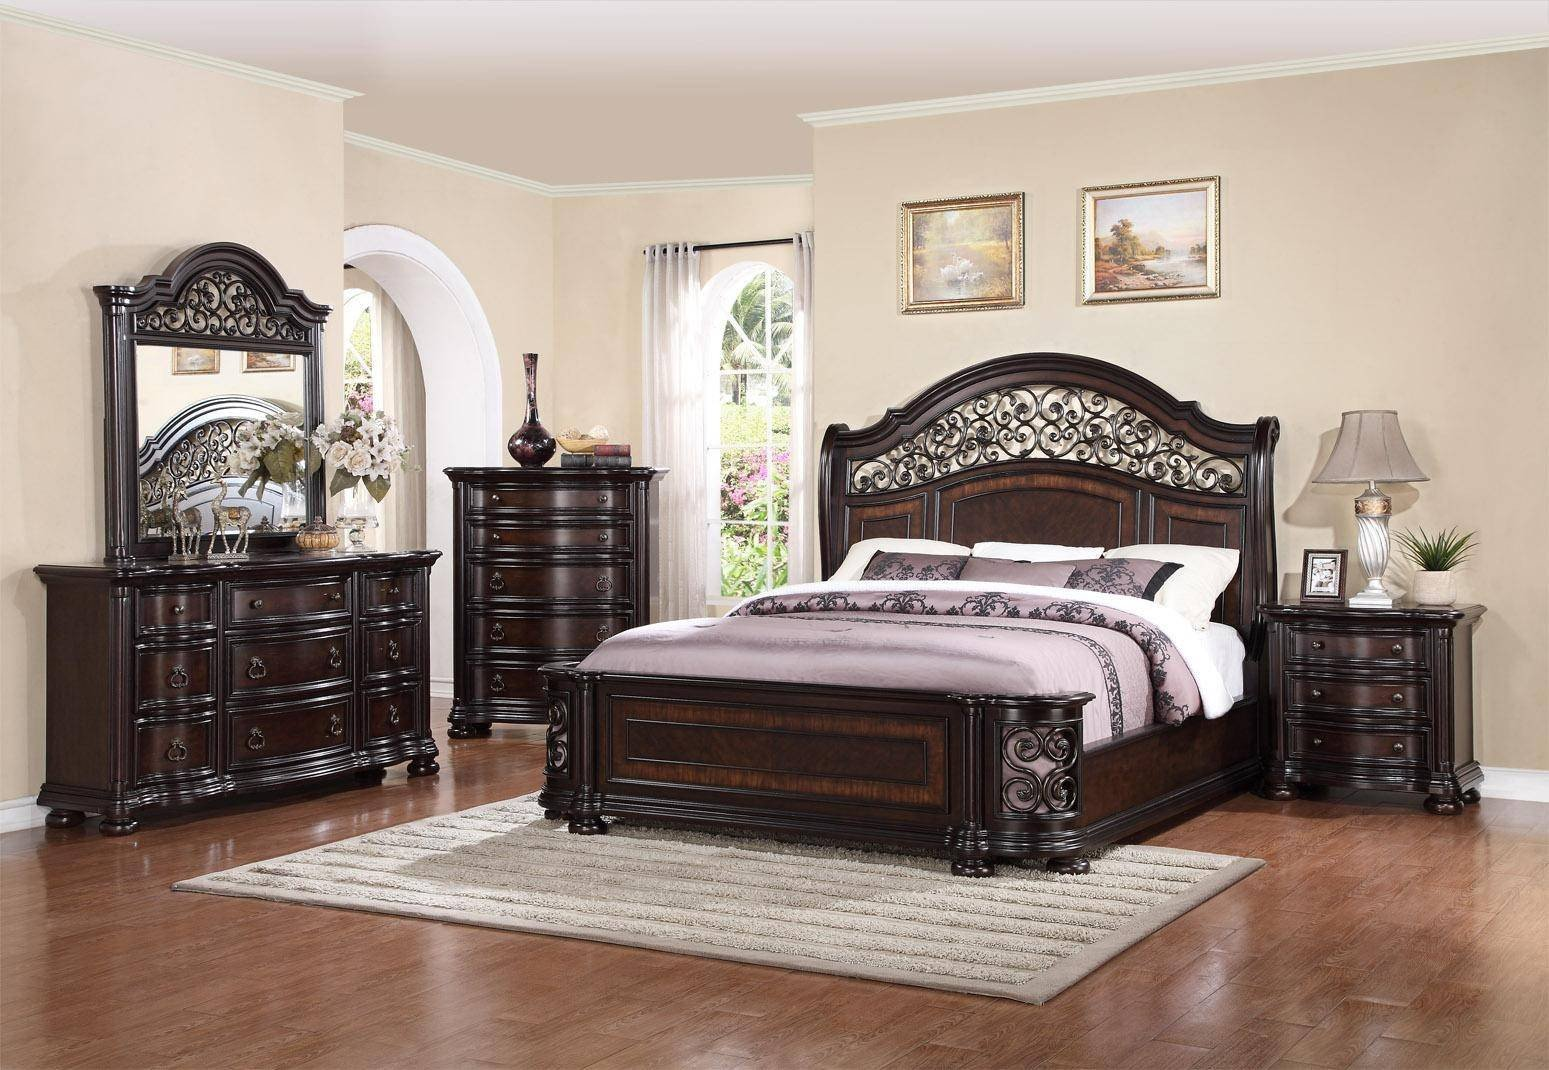 7 Piece Bedroom Set King Best Of Mcferran B366 Allison Espresso Finish solid Hardwood